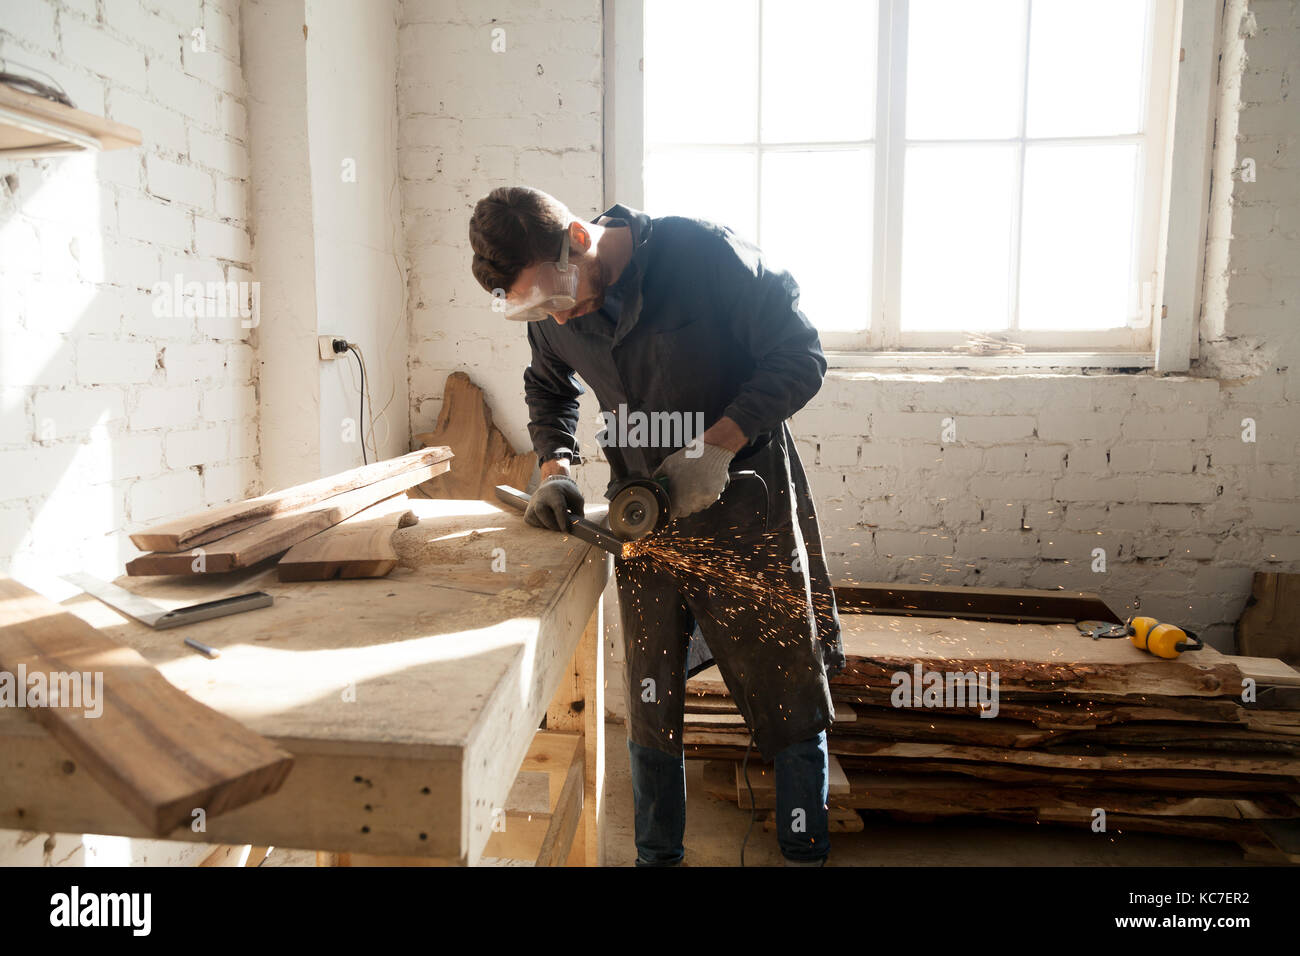 Man starting own small business in home workshop - Stock Image